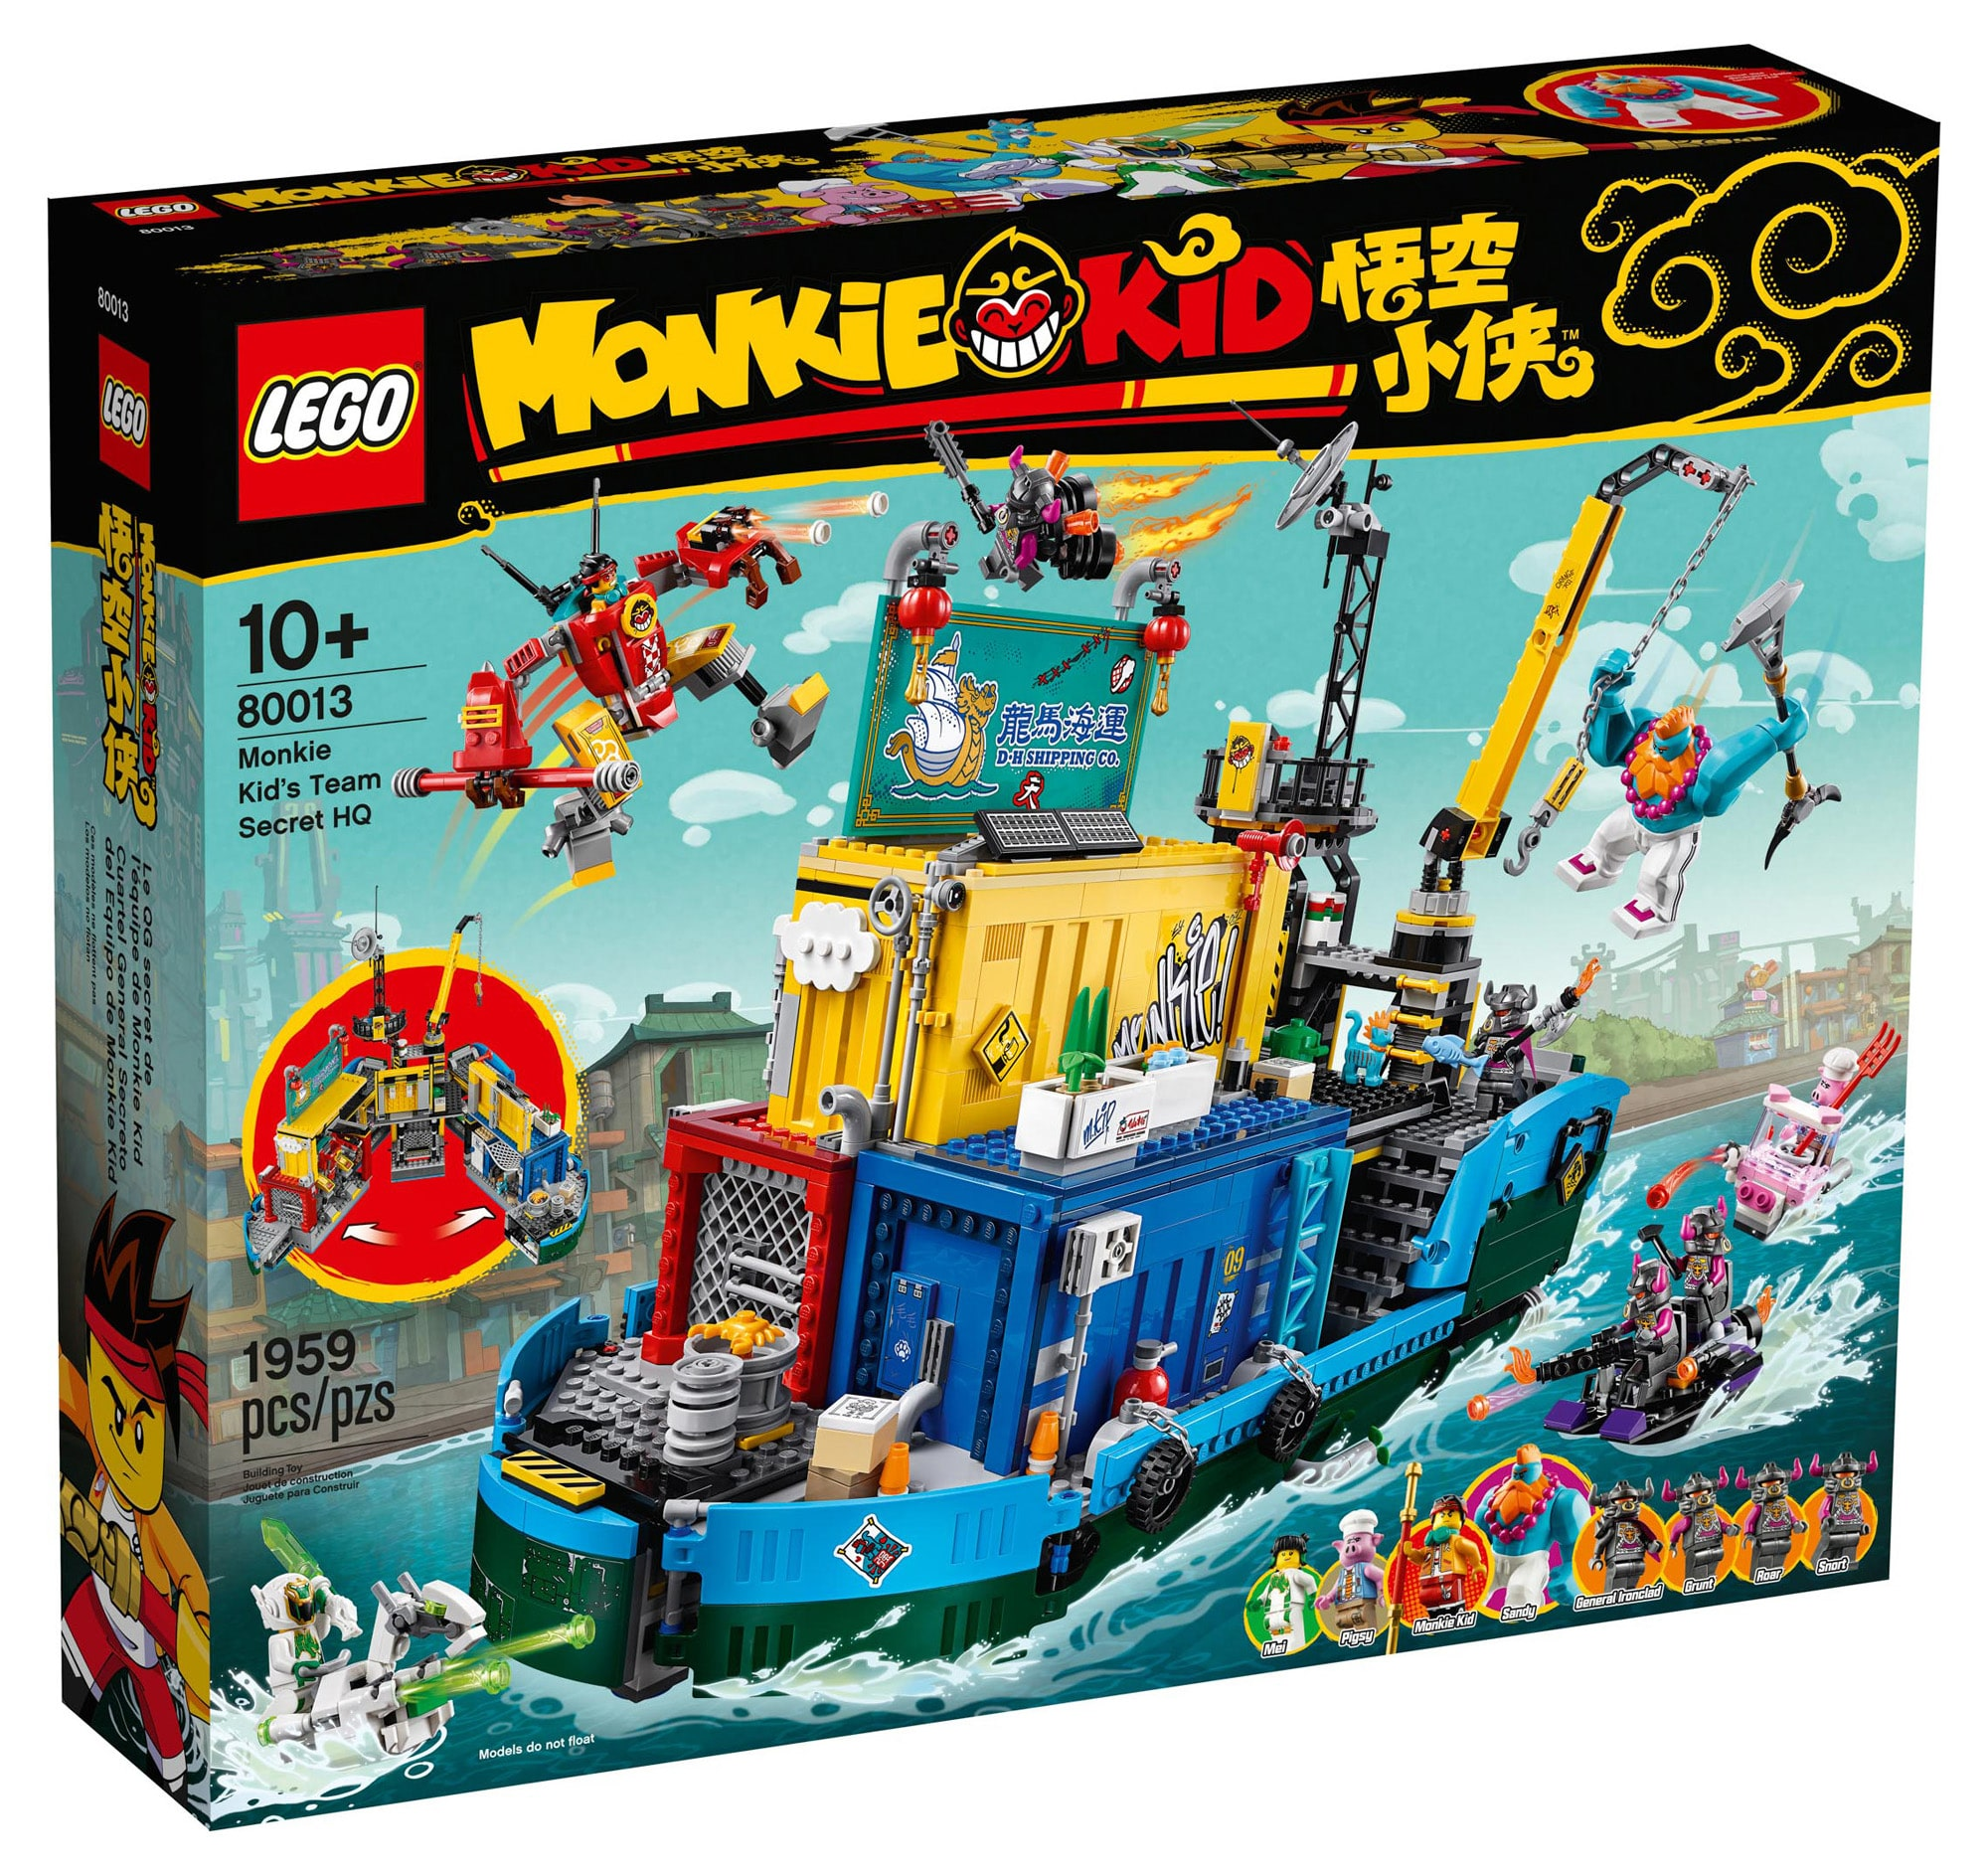 LEGO Monkie Kid 80013 Monkie Kids Team Secret Hq